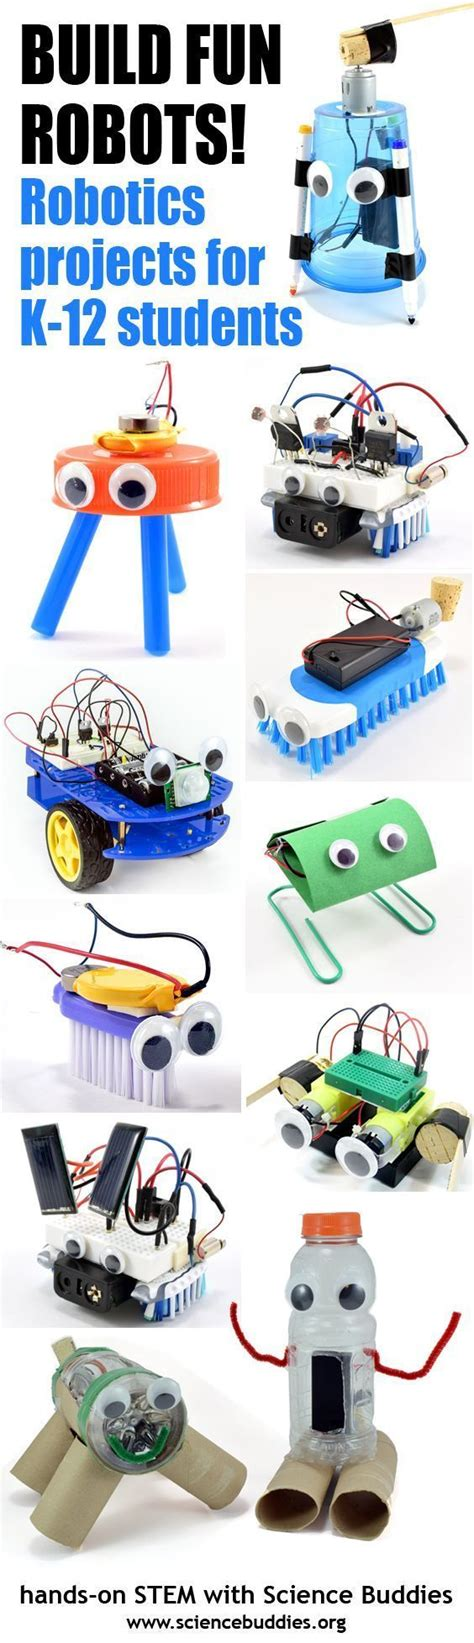 discover science robots 0753442299 25 best ideas about robot crafts on robots for kids toilet roll crafts and toilet